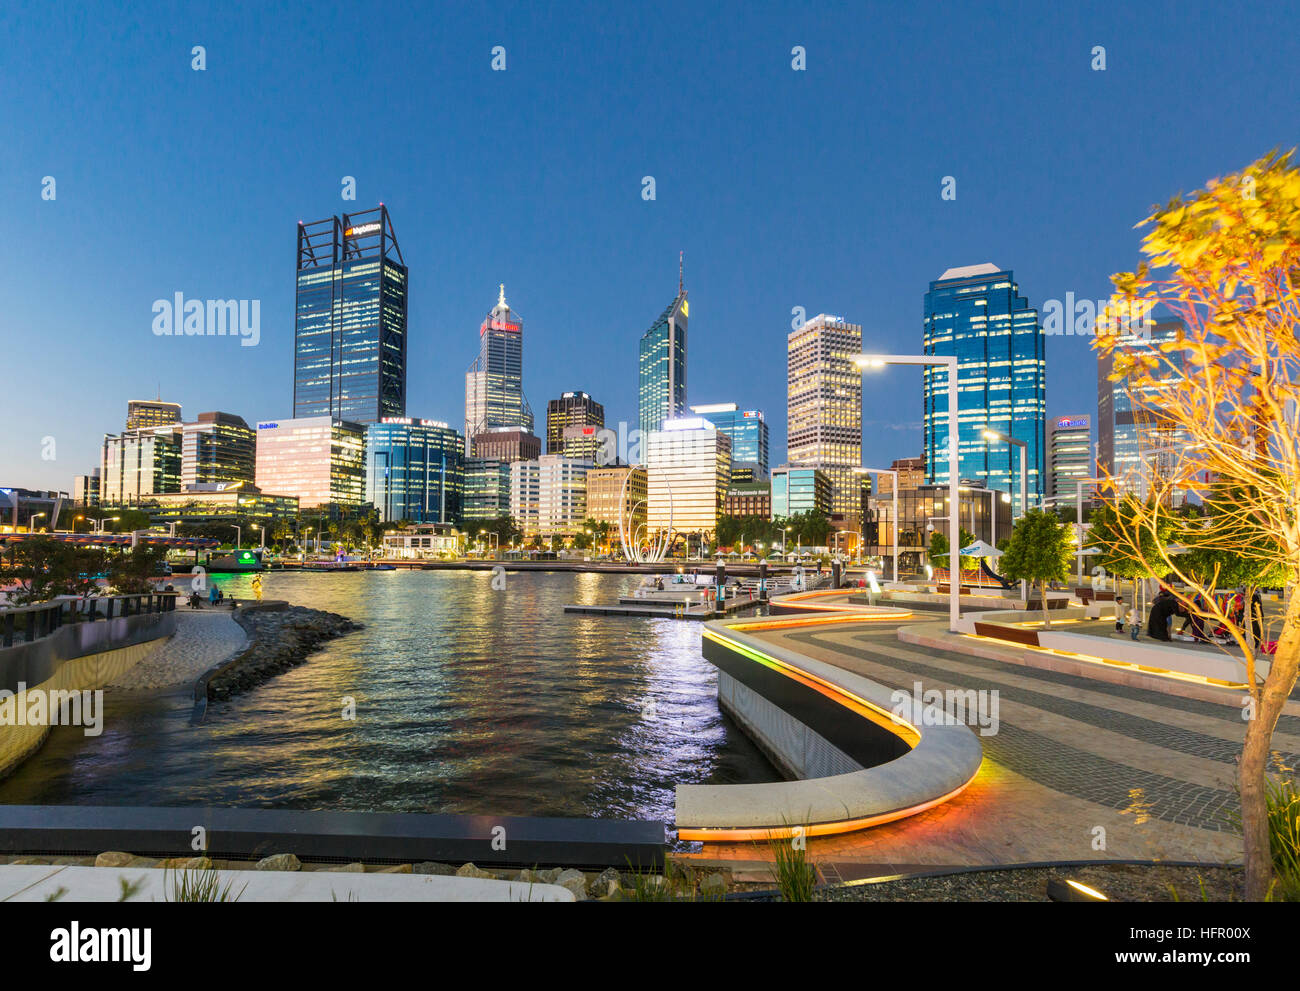 The waterfront precinct of Elizabeth Quay illuminated at twilght with the city skyline beyond, Perth, Western Australia, - Stock Image